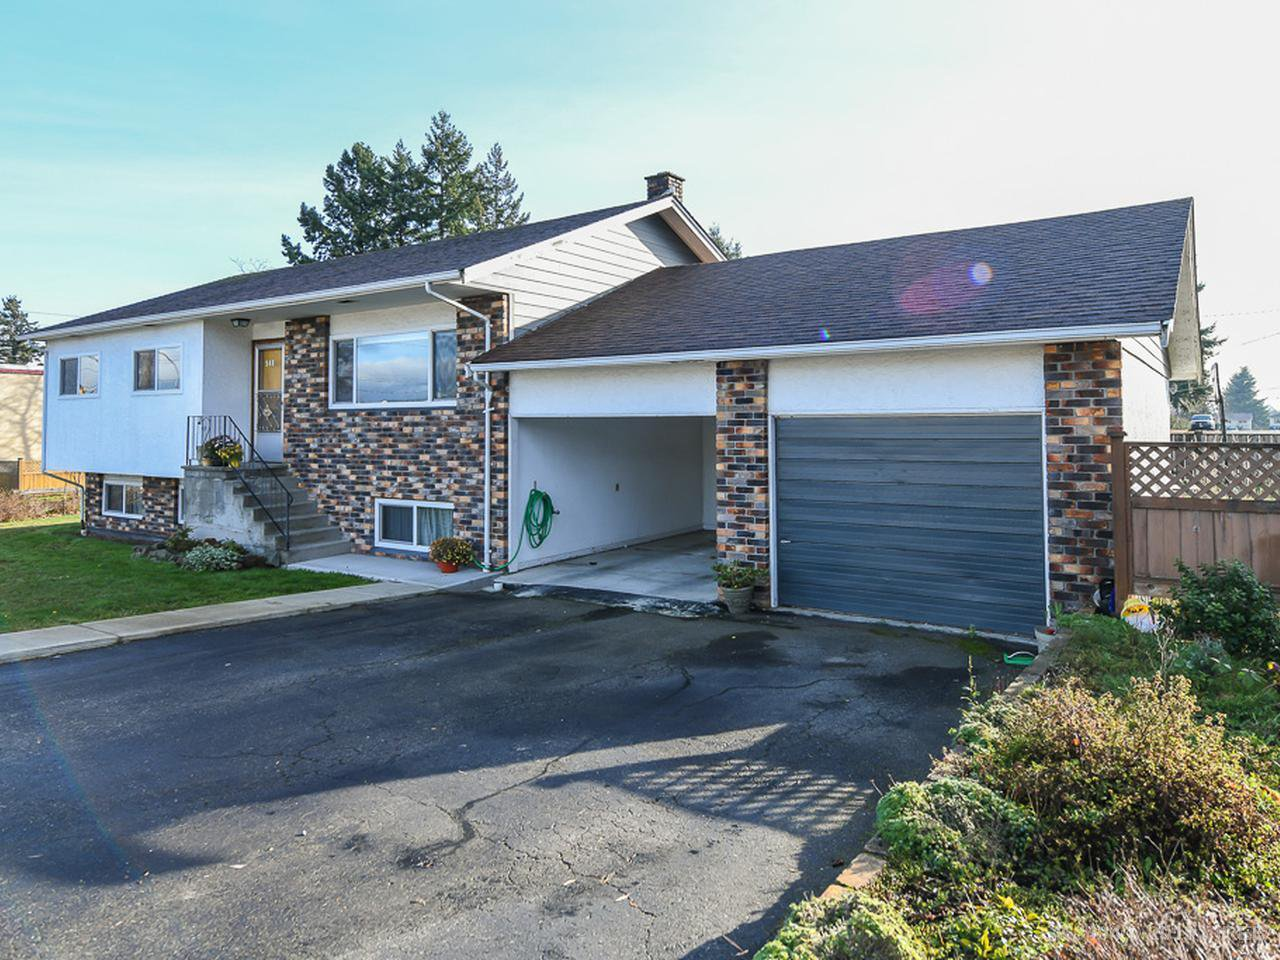 Main Photo: 540 17 Street in Courtenay: House for sale : MLS®# 463494